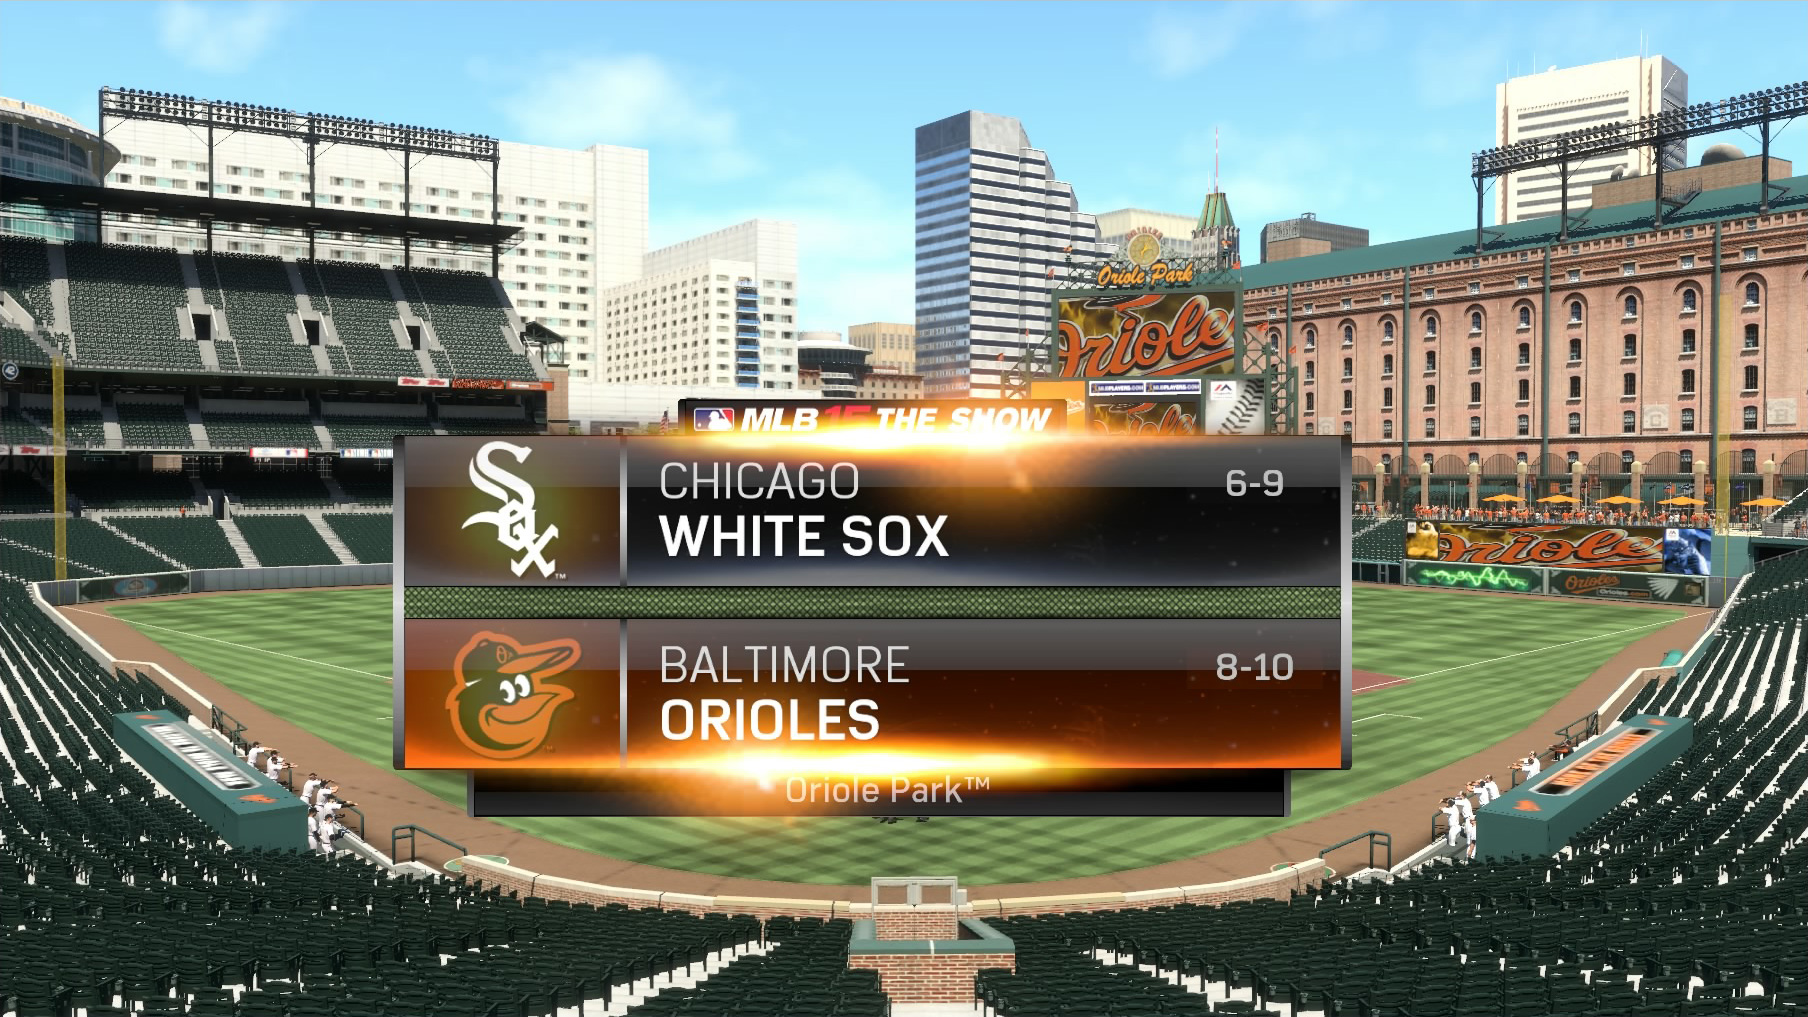 MLB 15 The Show recreates historic Baltimore Orioles game played in empty ballpark